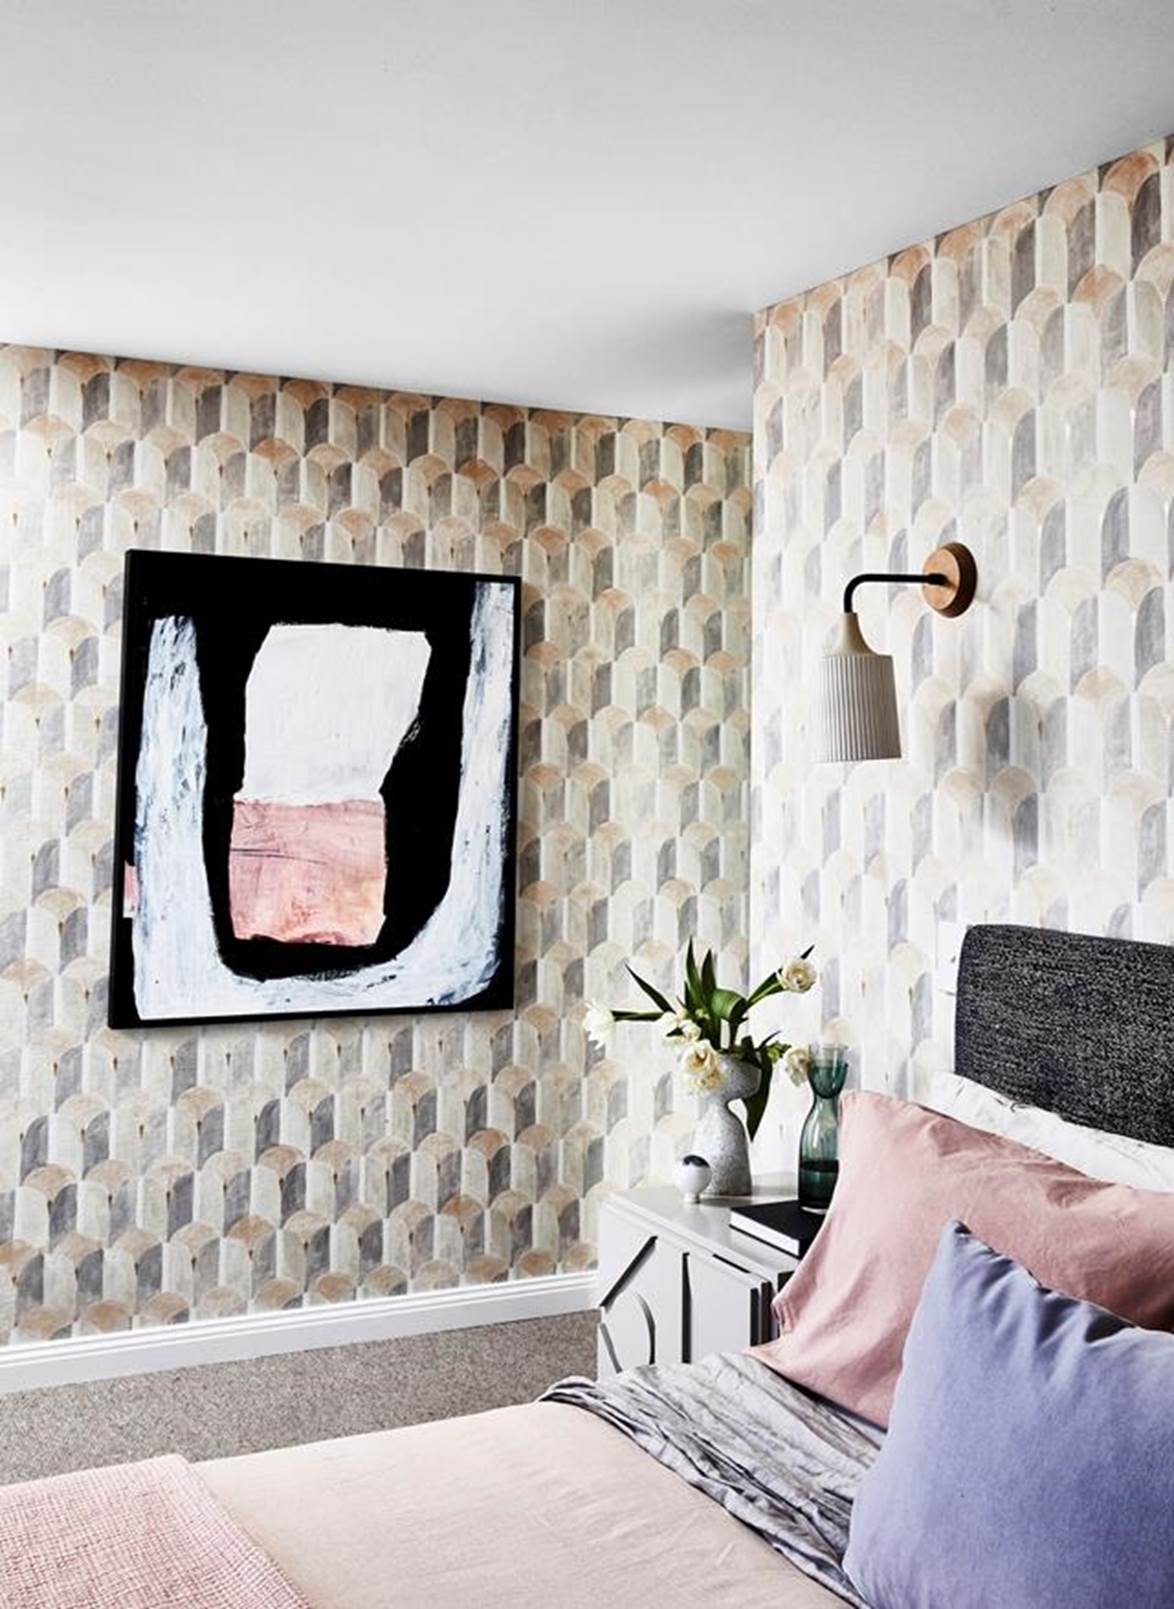 """Sophie Bowers of Strutt Studios collaborated with stylist Jono Fleming on his parents' home renovation. Bold patterns and textures on the walls elevate the [colourful penthouse](https://www.homestolove.com.au/colourful-penthouse-apartment-with-personality-20466